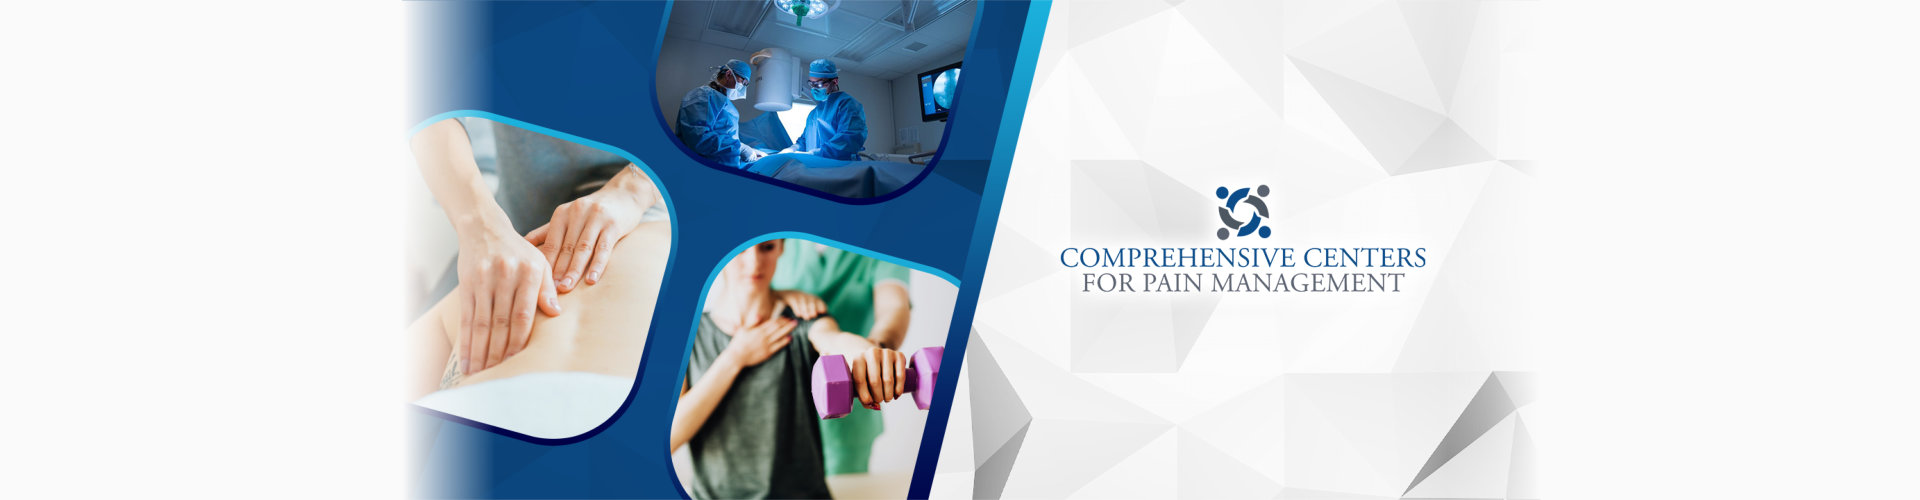 Comprehensive Centers for Pain Management